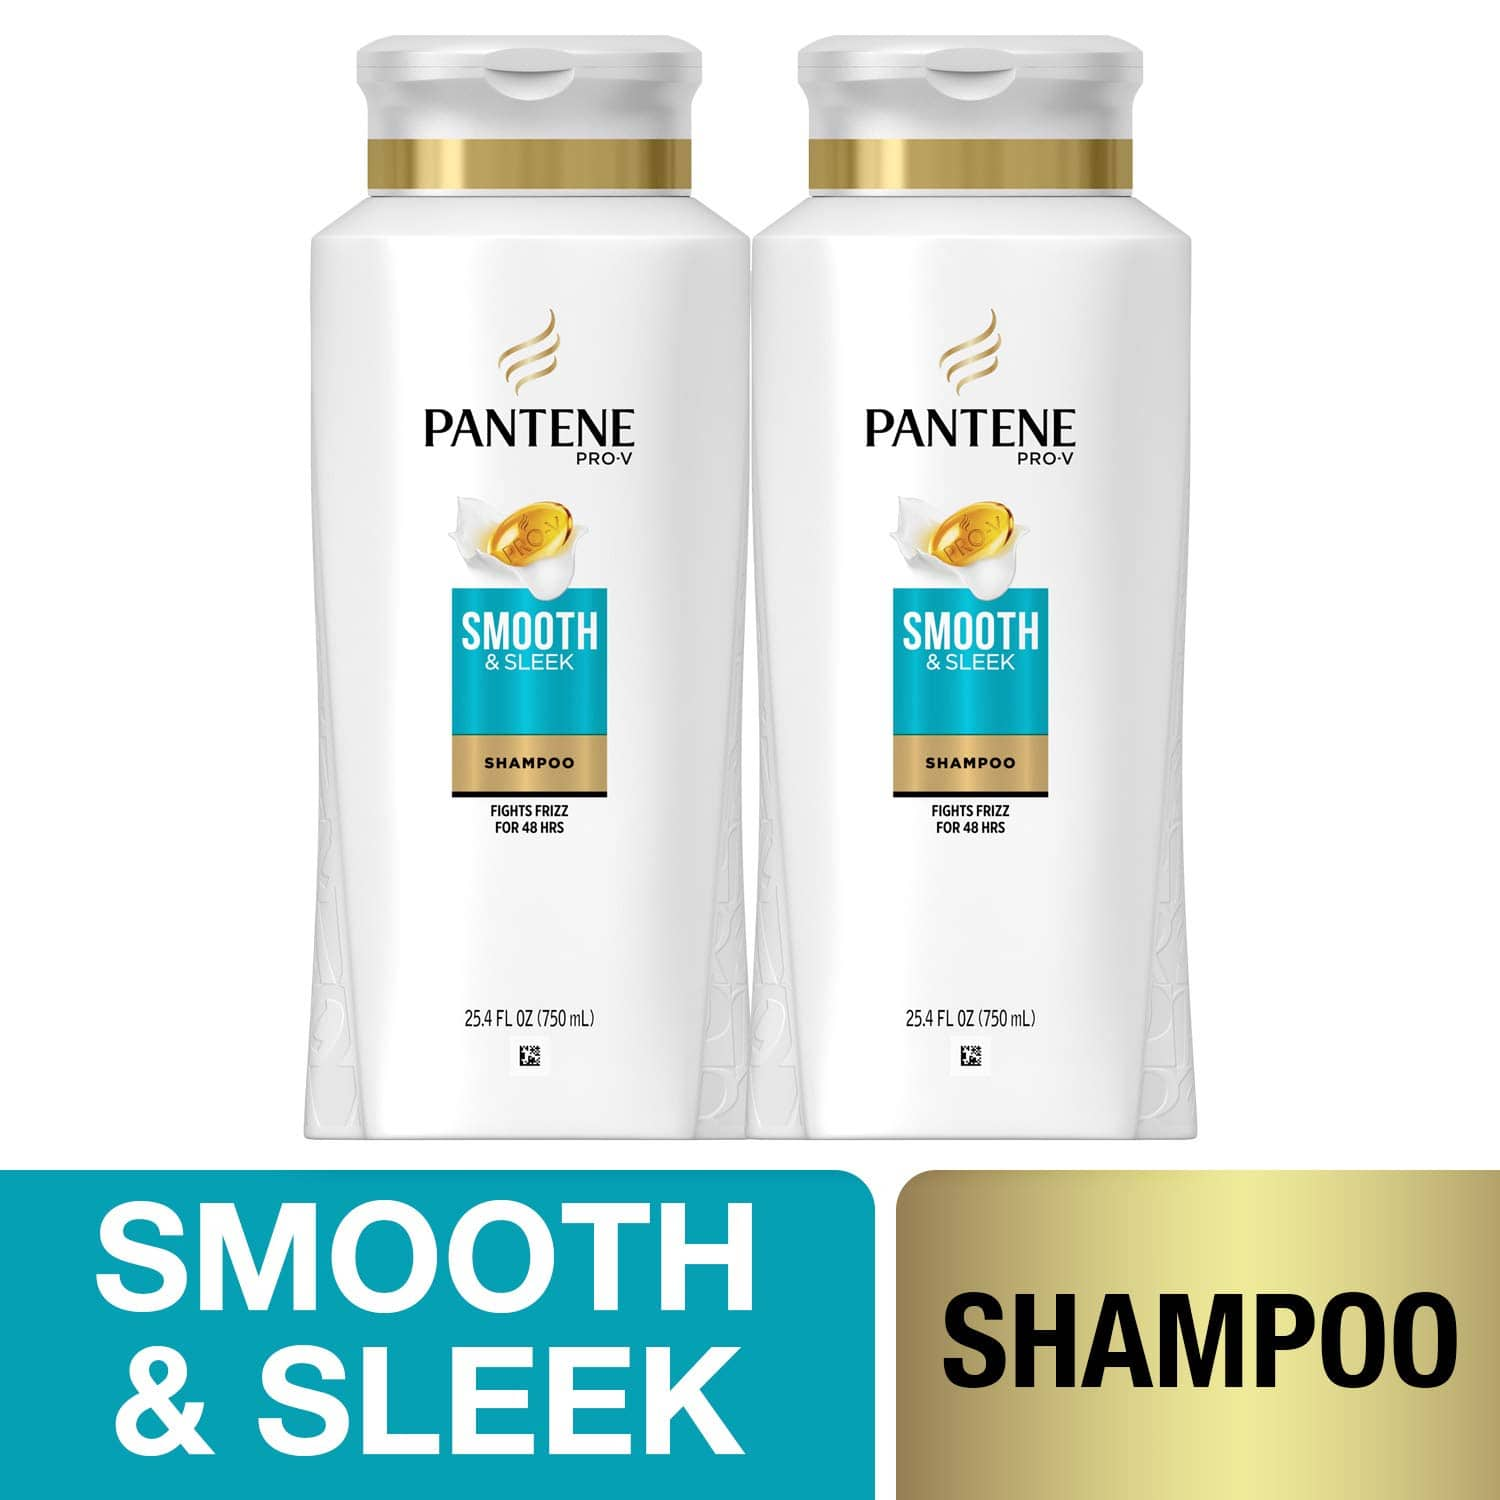 2 bottles Pantene Shampoo with Argan Oil Pro-V Smooth and Sleek Frizz Control 25.4 fl oz as low as $5.97+ free ship